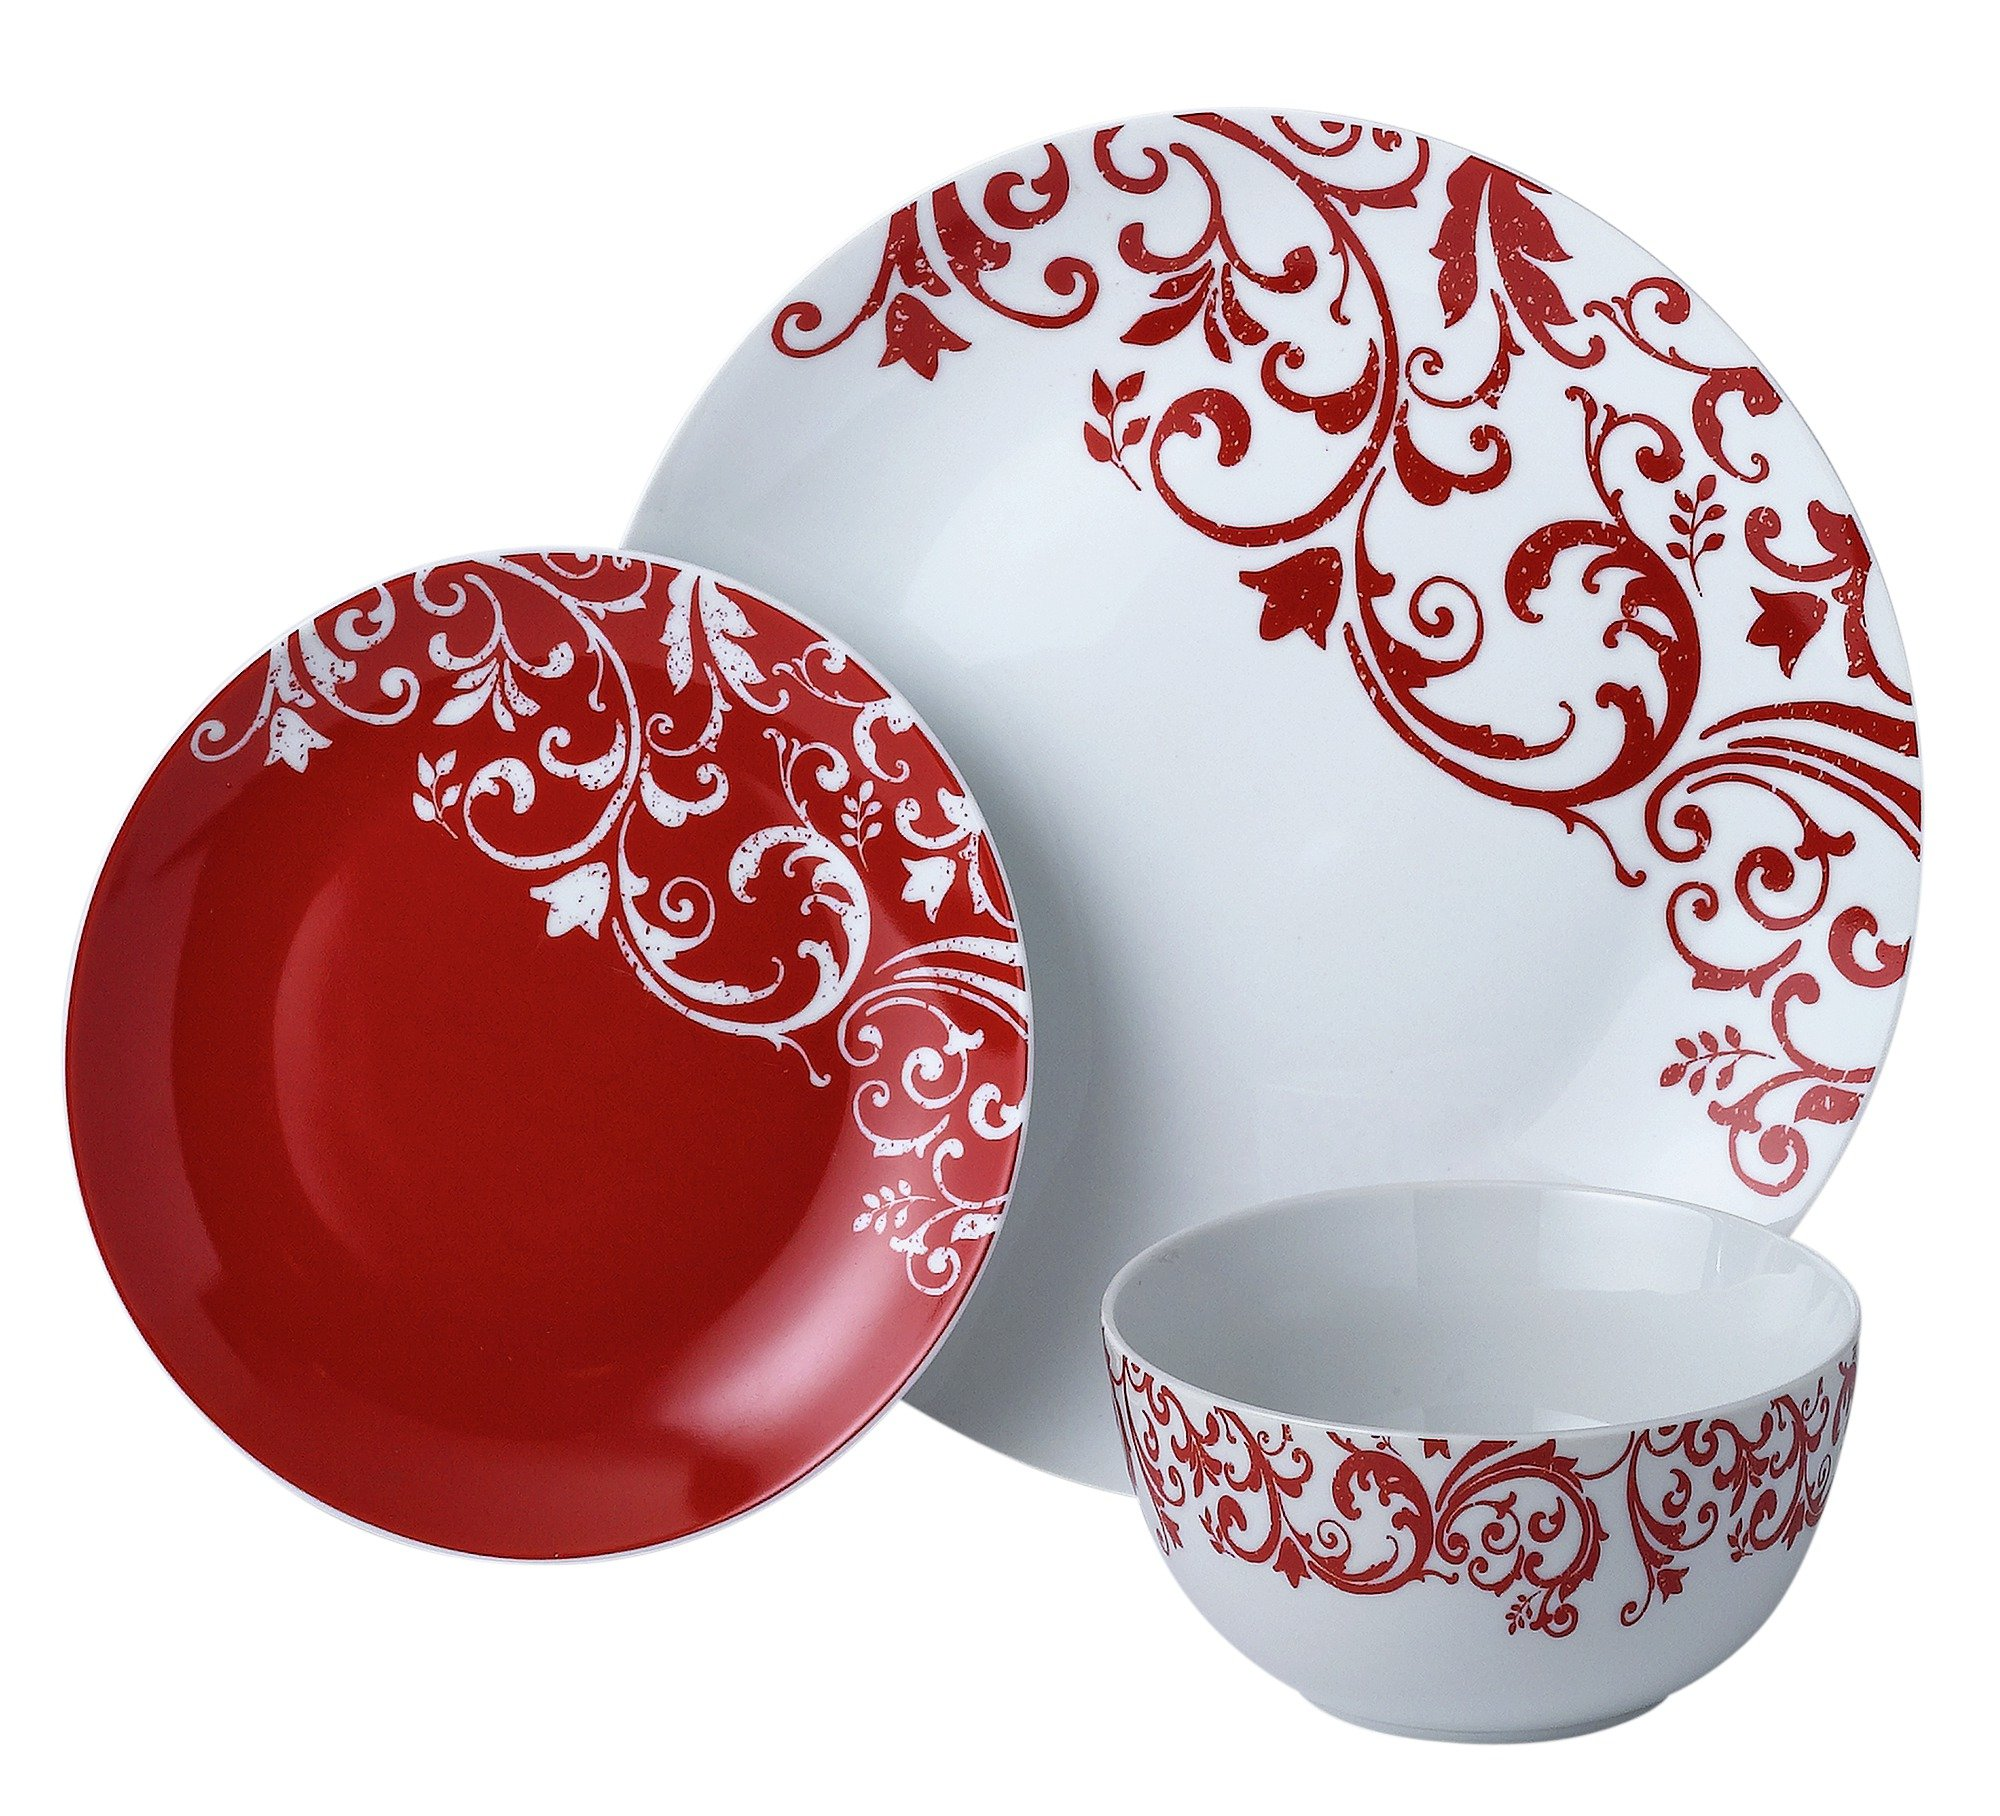 HOME 12 Piece Porcelain Damask Dinner Set   Red